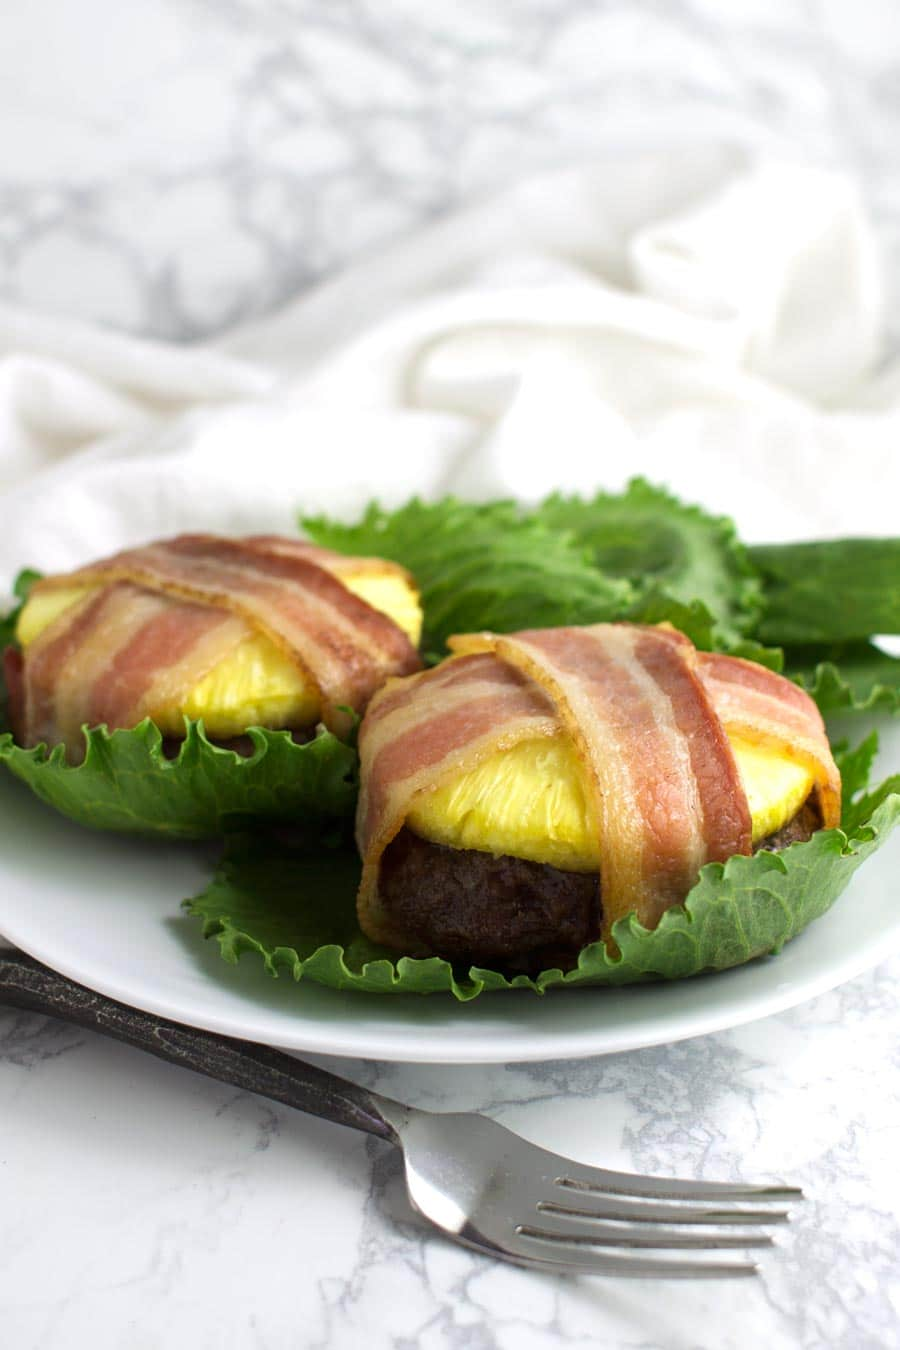 Pineapple Bacon Burgers recipe from acleanplate.com #aip #paleo #autoimmuneprotocol